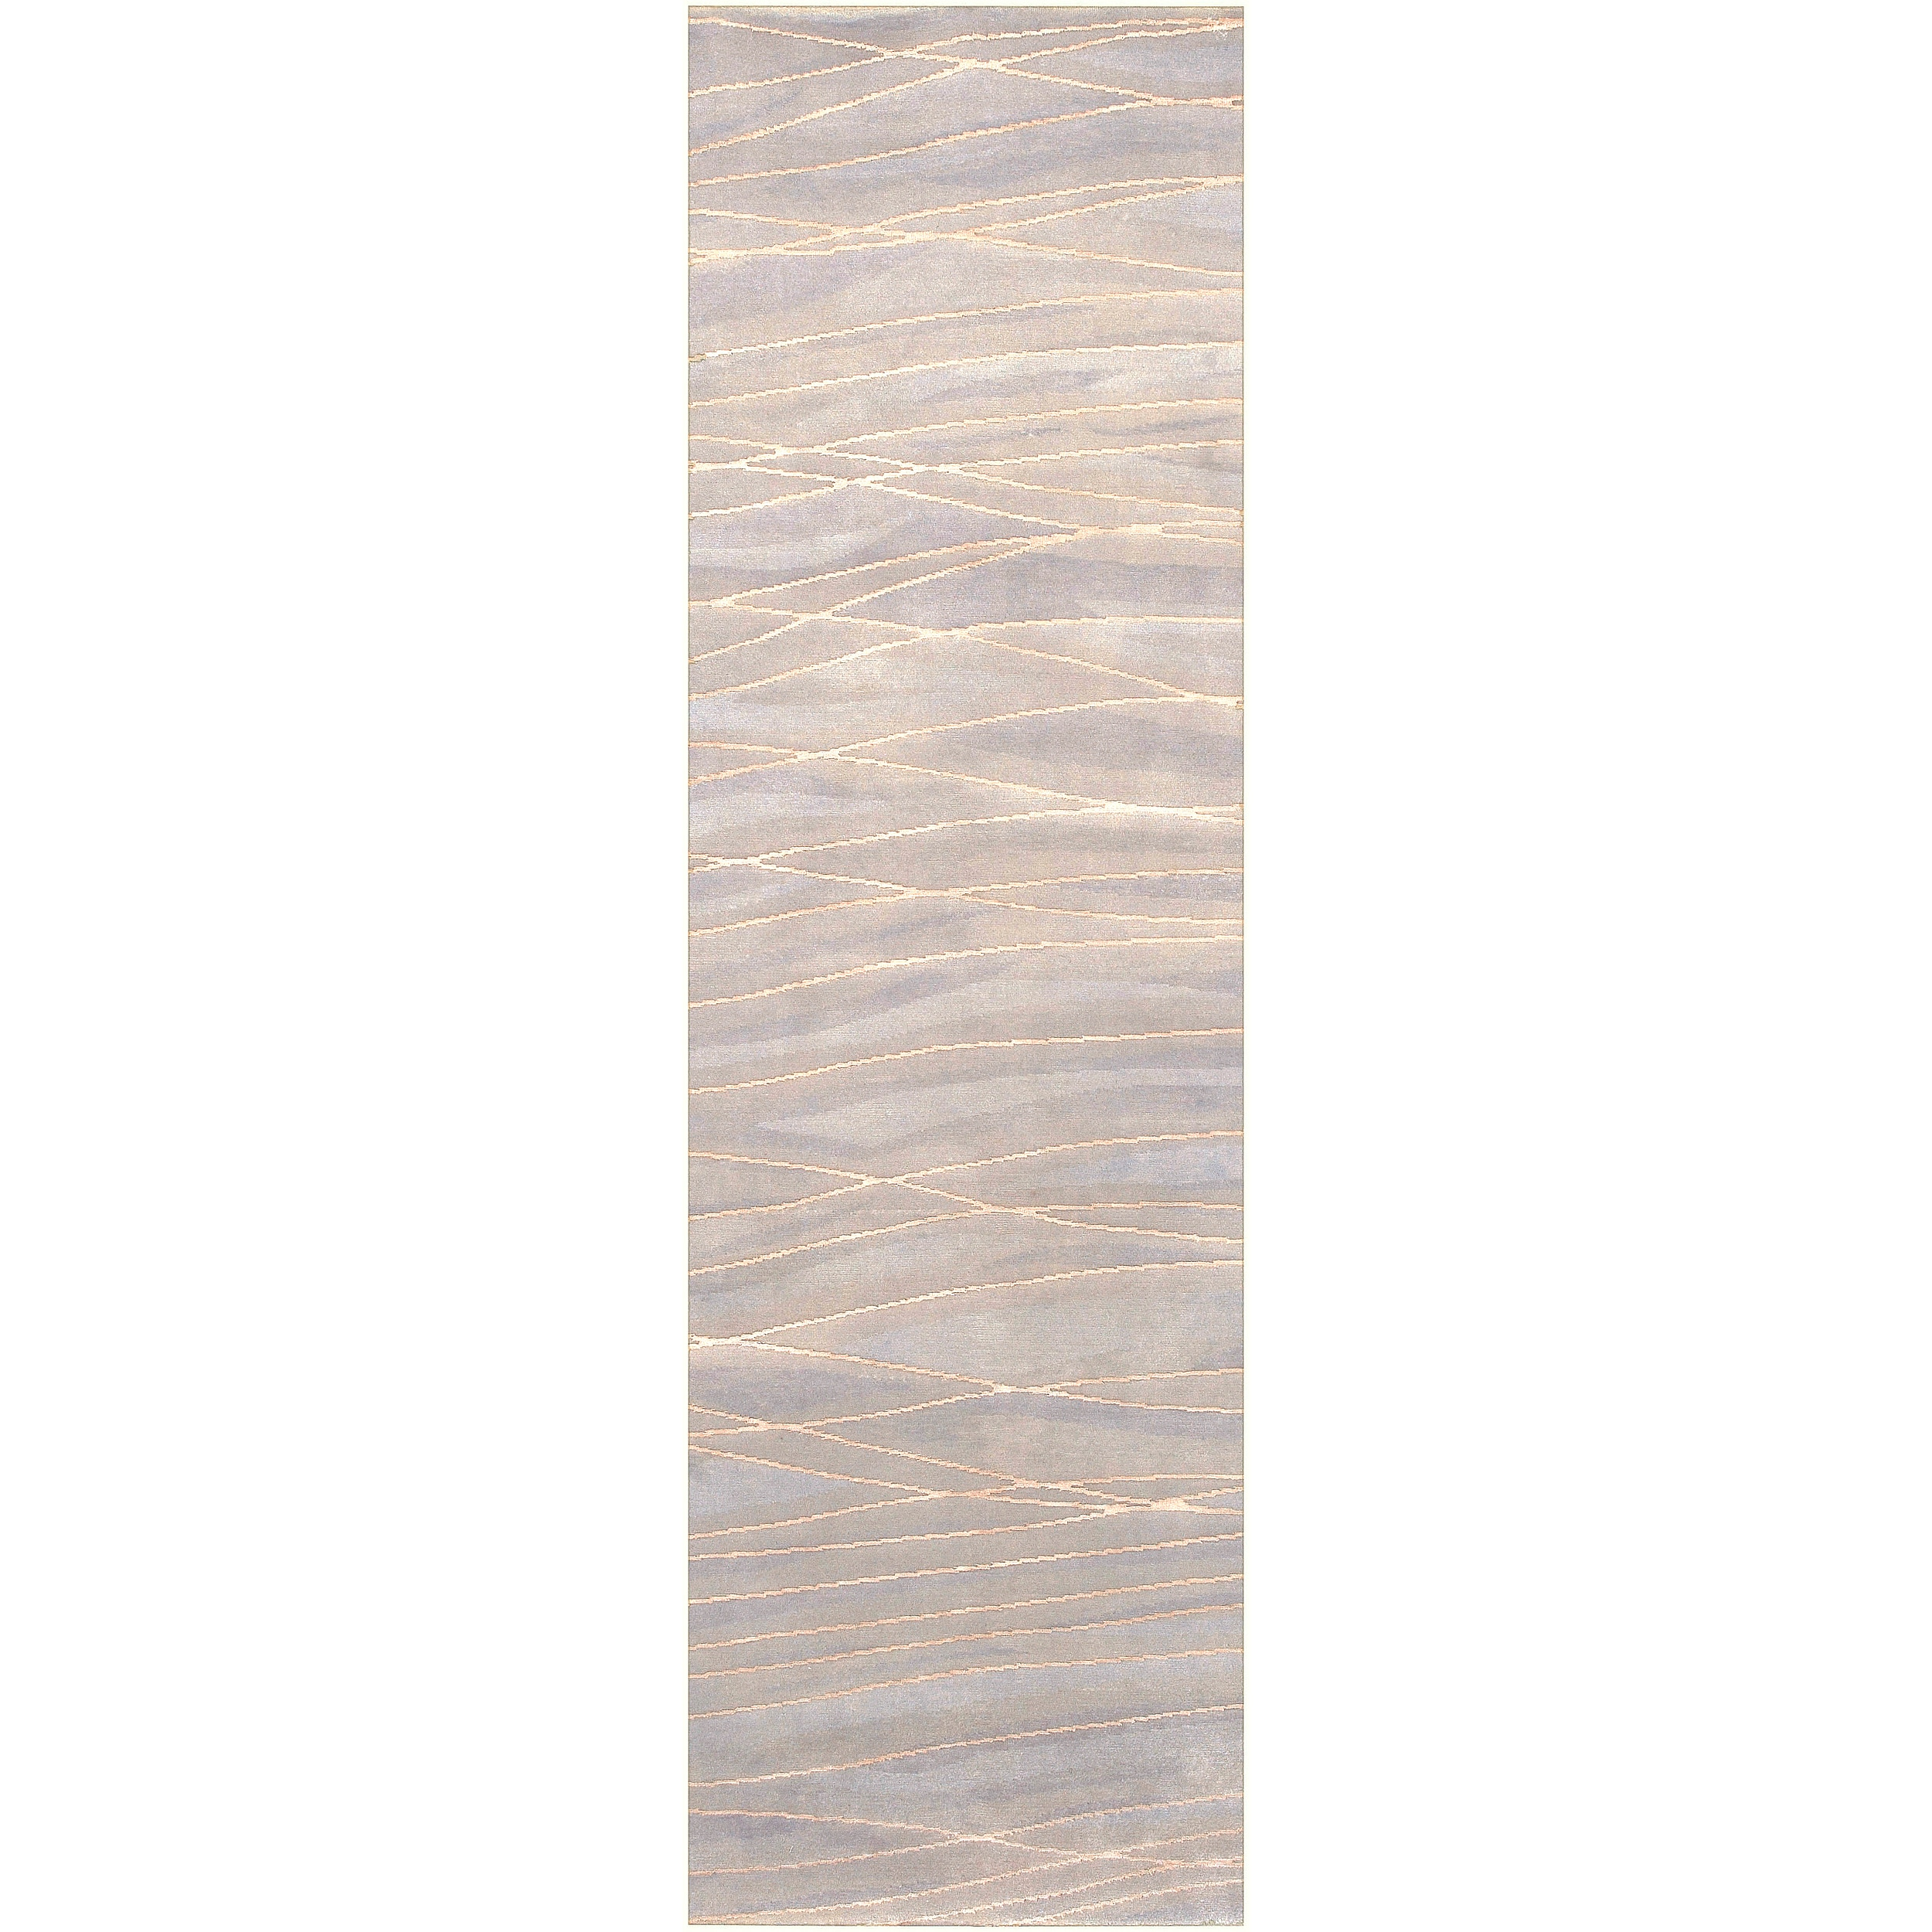 Hand-knotted Kempston Abstract Design Wool Rug (2 '6 x 10')